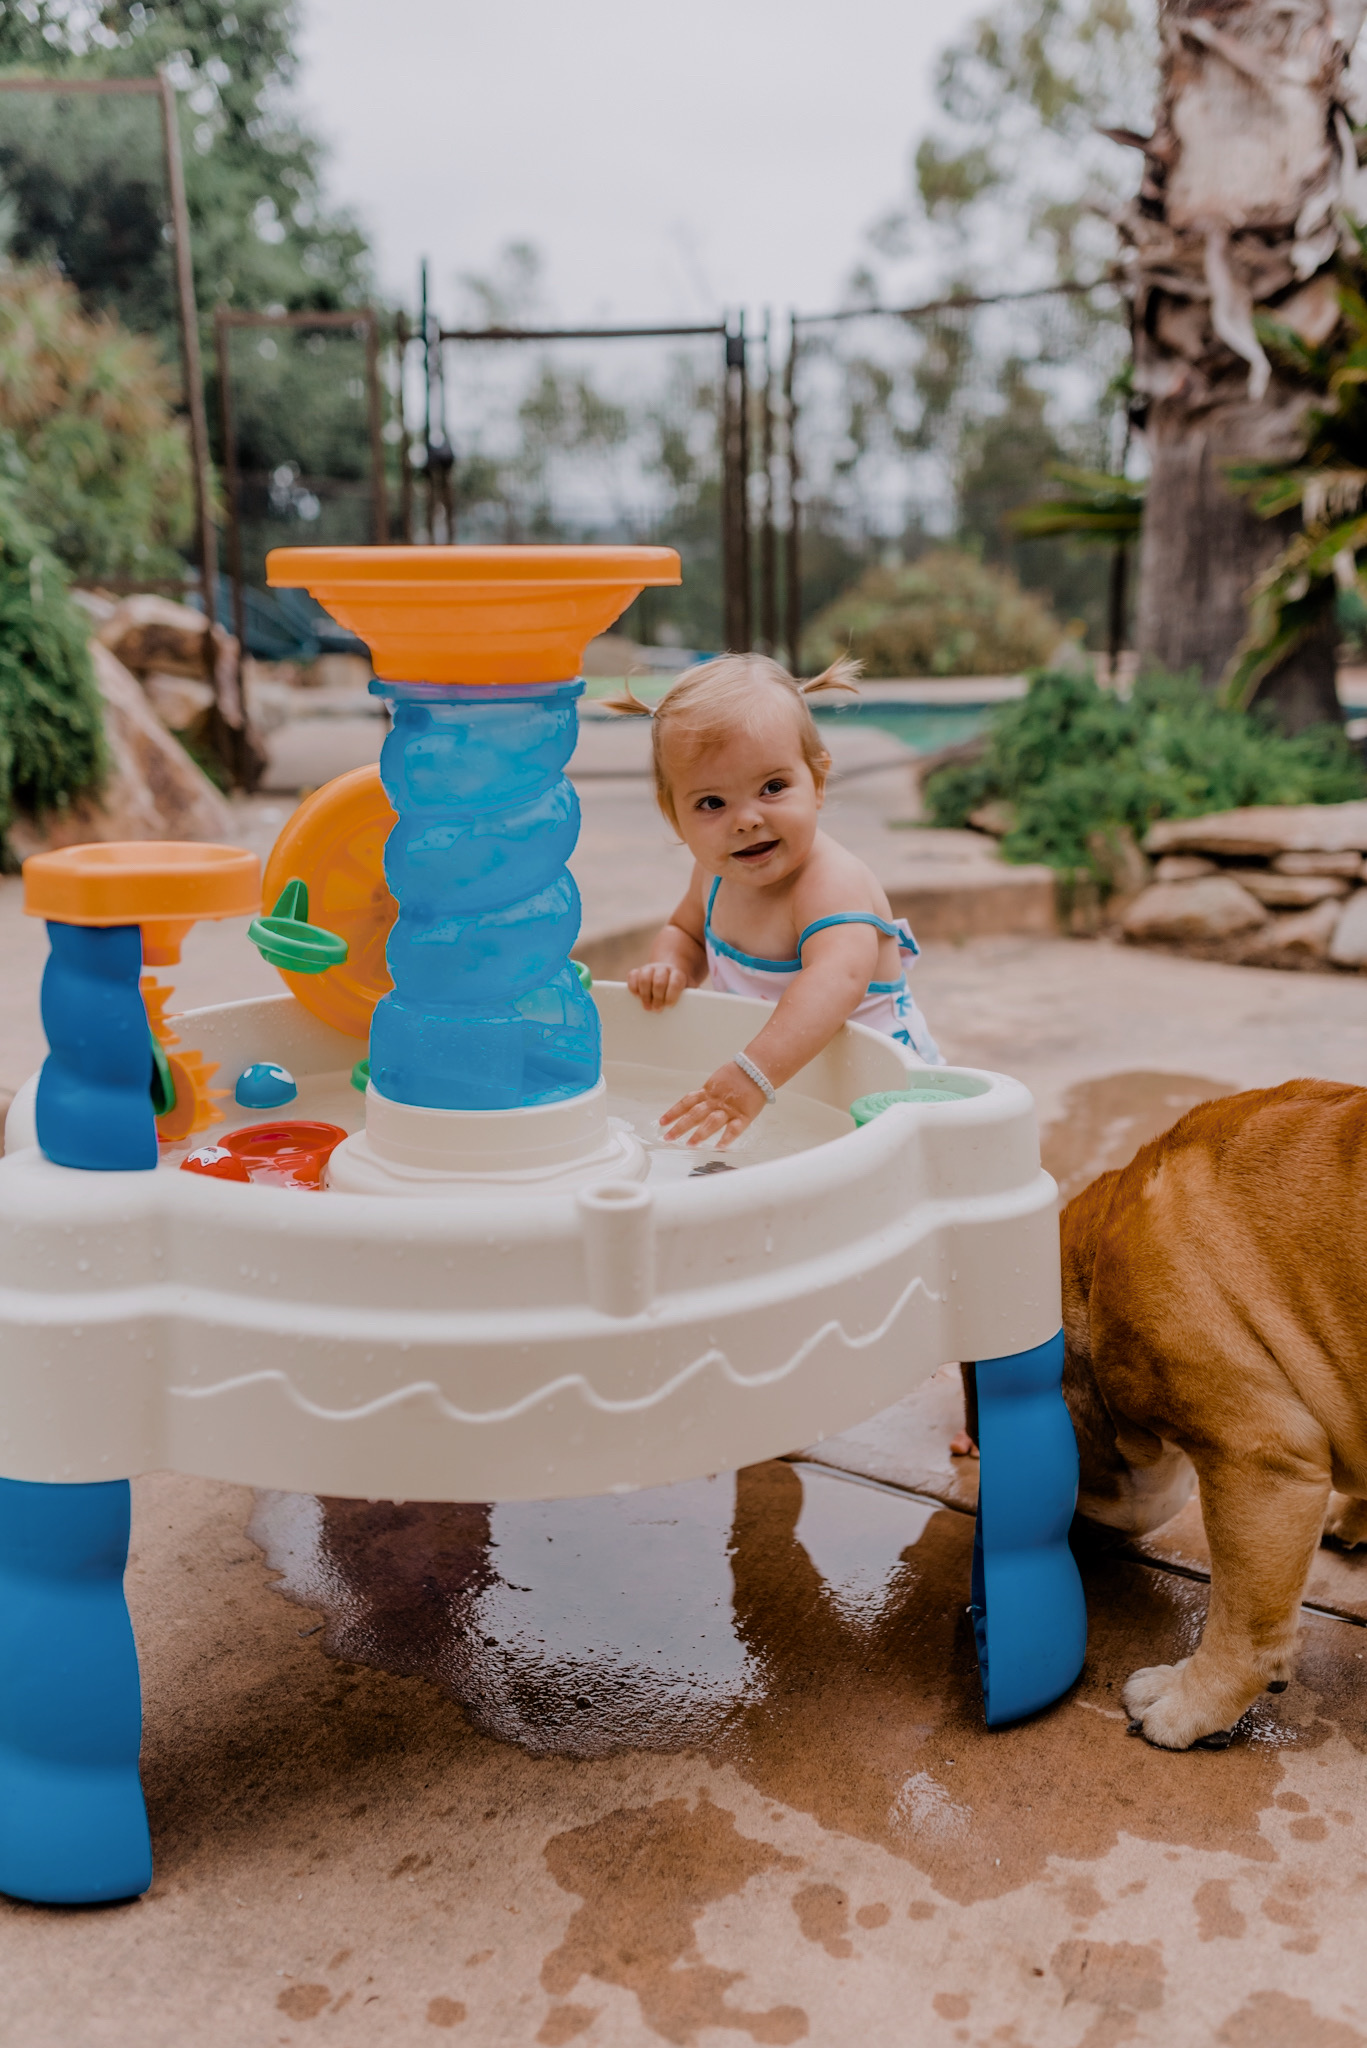 18 SUPER FUN OUTDOOR ACTIVITIES FOR YOUR FAMILY THIS SUMMER featured by top San Diego lifestyle blogger, Navy Grace | Family Outdoor Activities by popular San Diego lifestyle blog, Navy Grace: image of a baby girl playing at a water table.